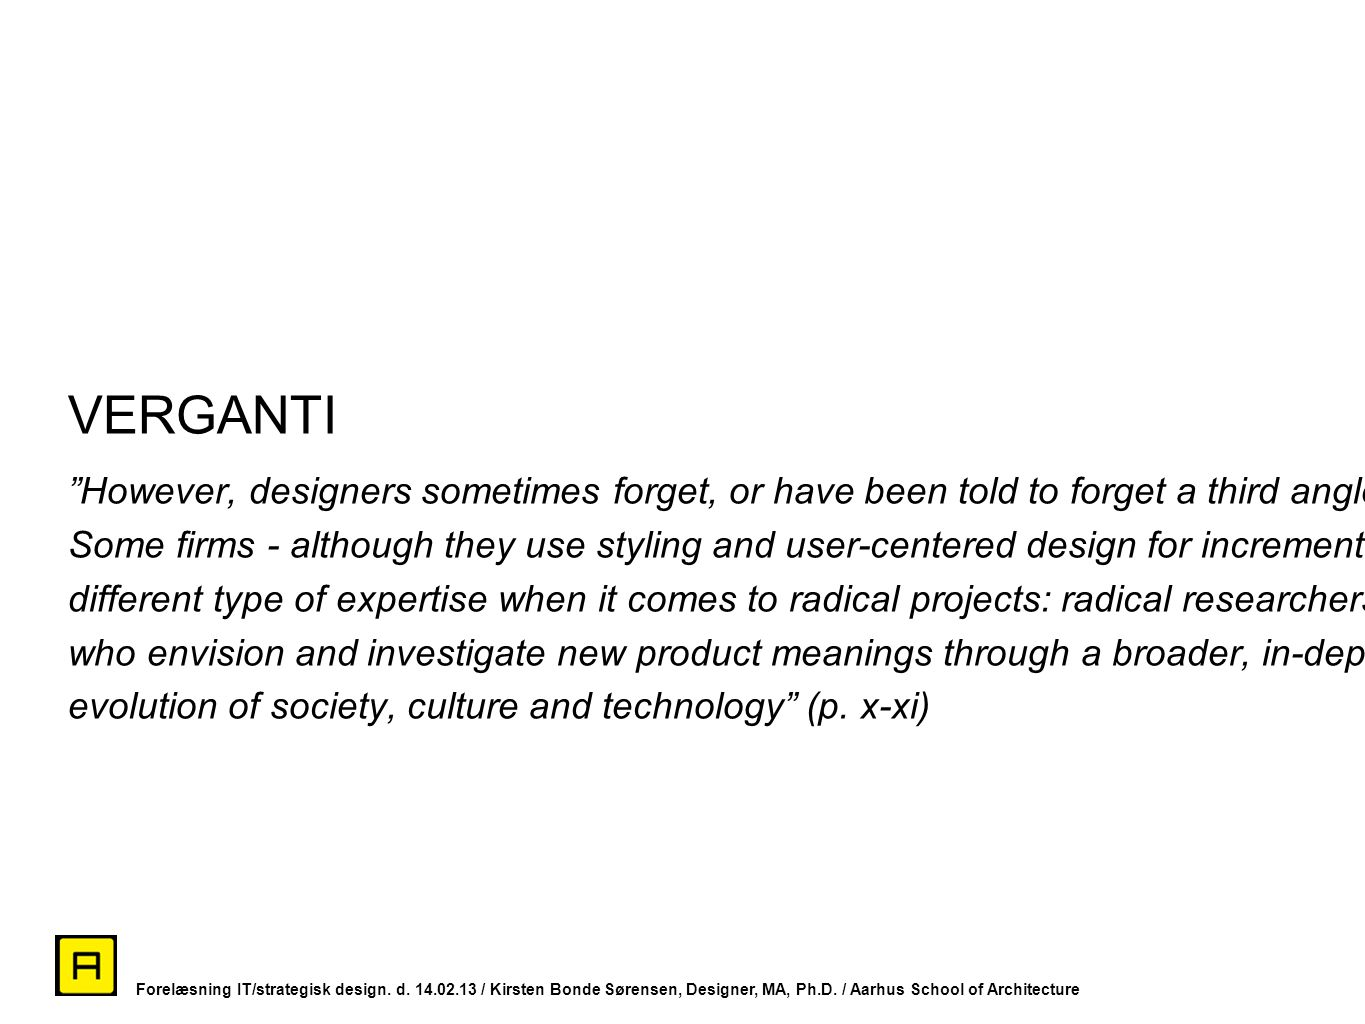 VERGANTI However, designers sometimes forget, or have been told to forget a third angle involved in innovation.